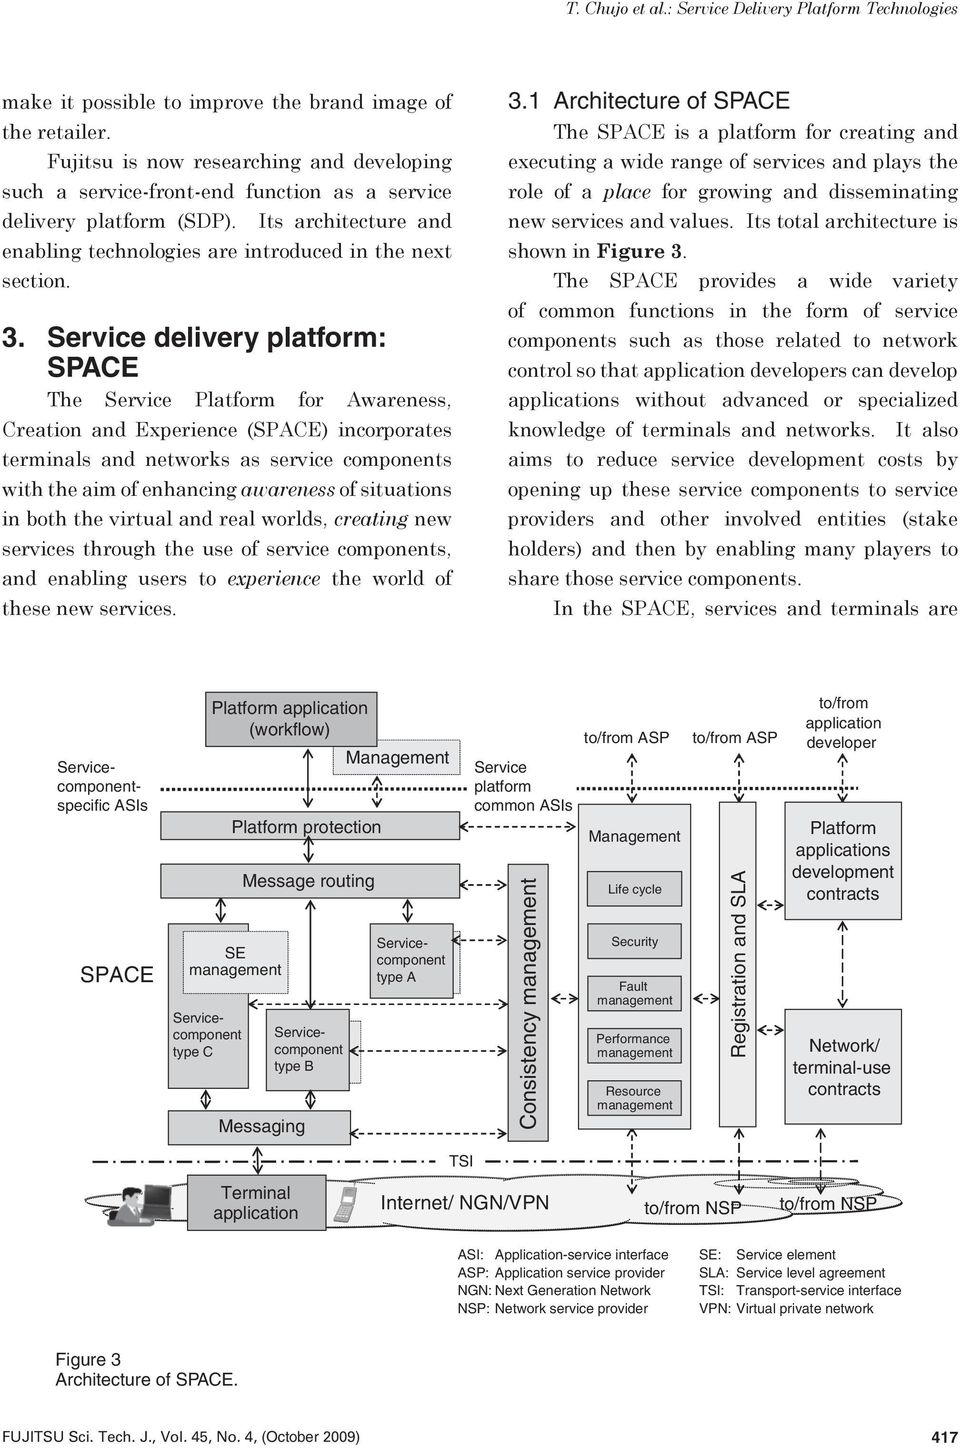 Service delivery platform: SPACE The Service Platform for Awareness, Creation and Experience (SPACE) incorporates terminals and networks as service components with the aim of enhancing awareness of